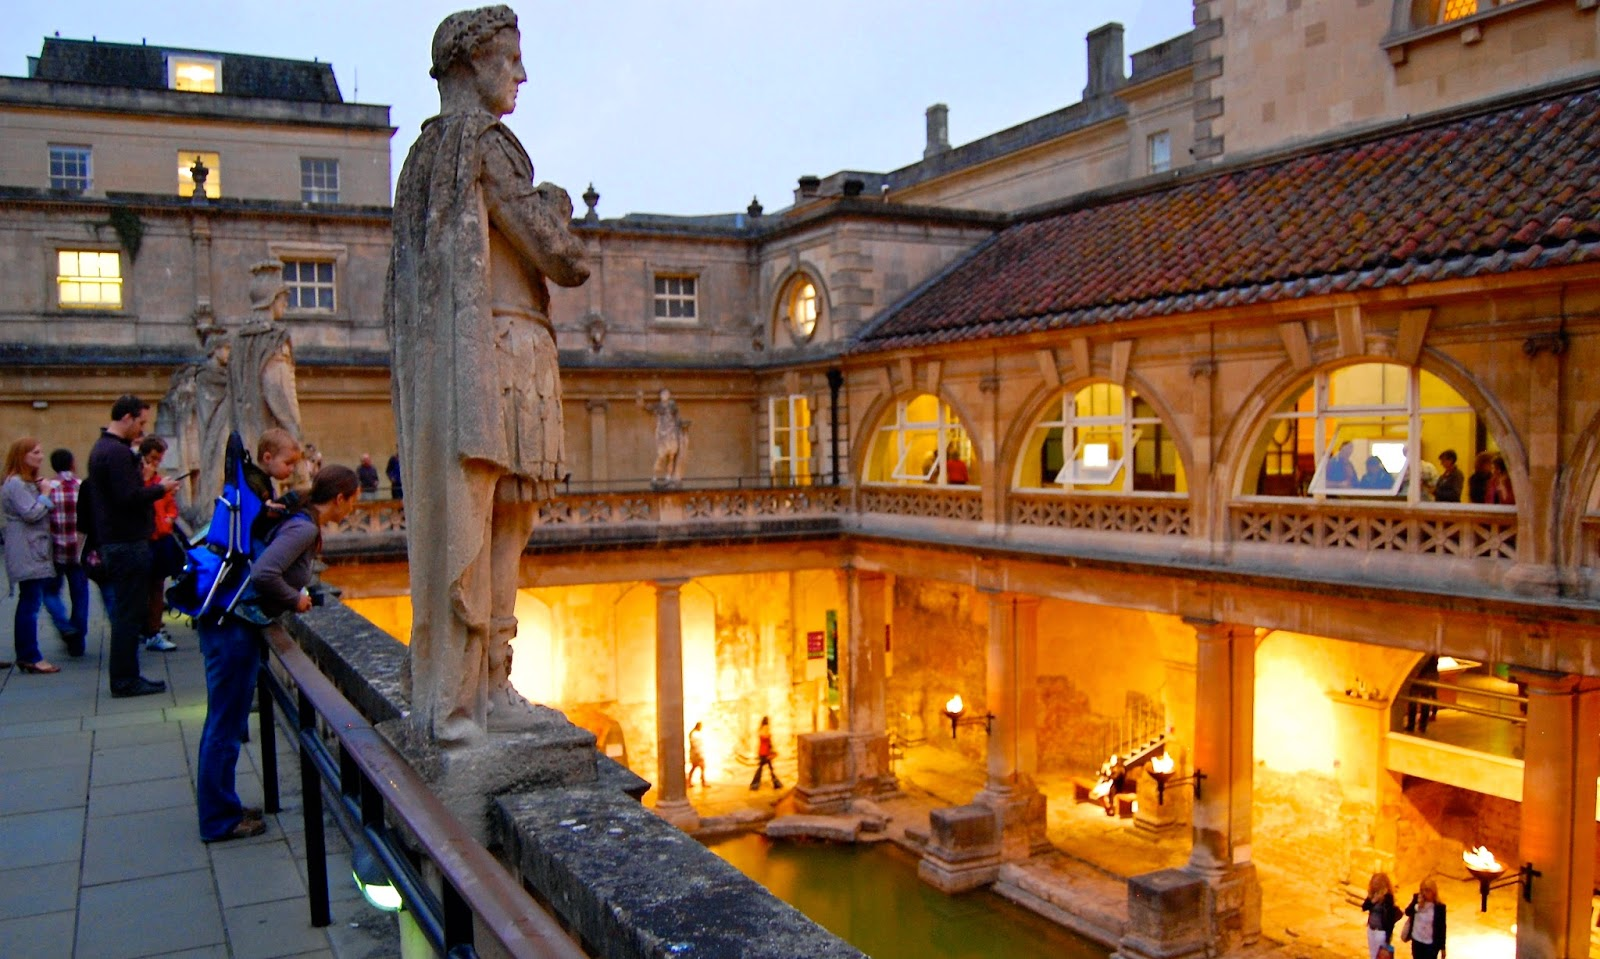 Viewing the Roman baths from the Victorian-era balcony